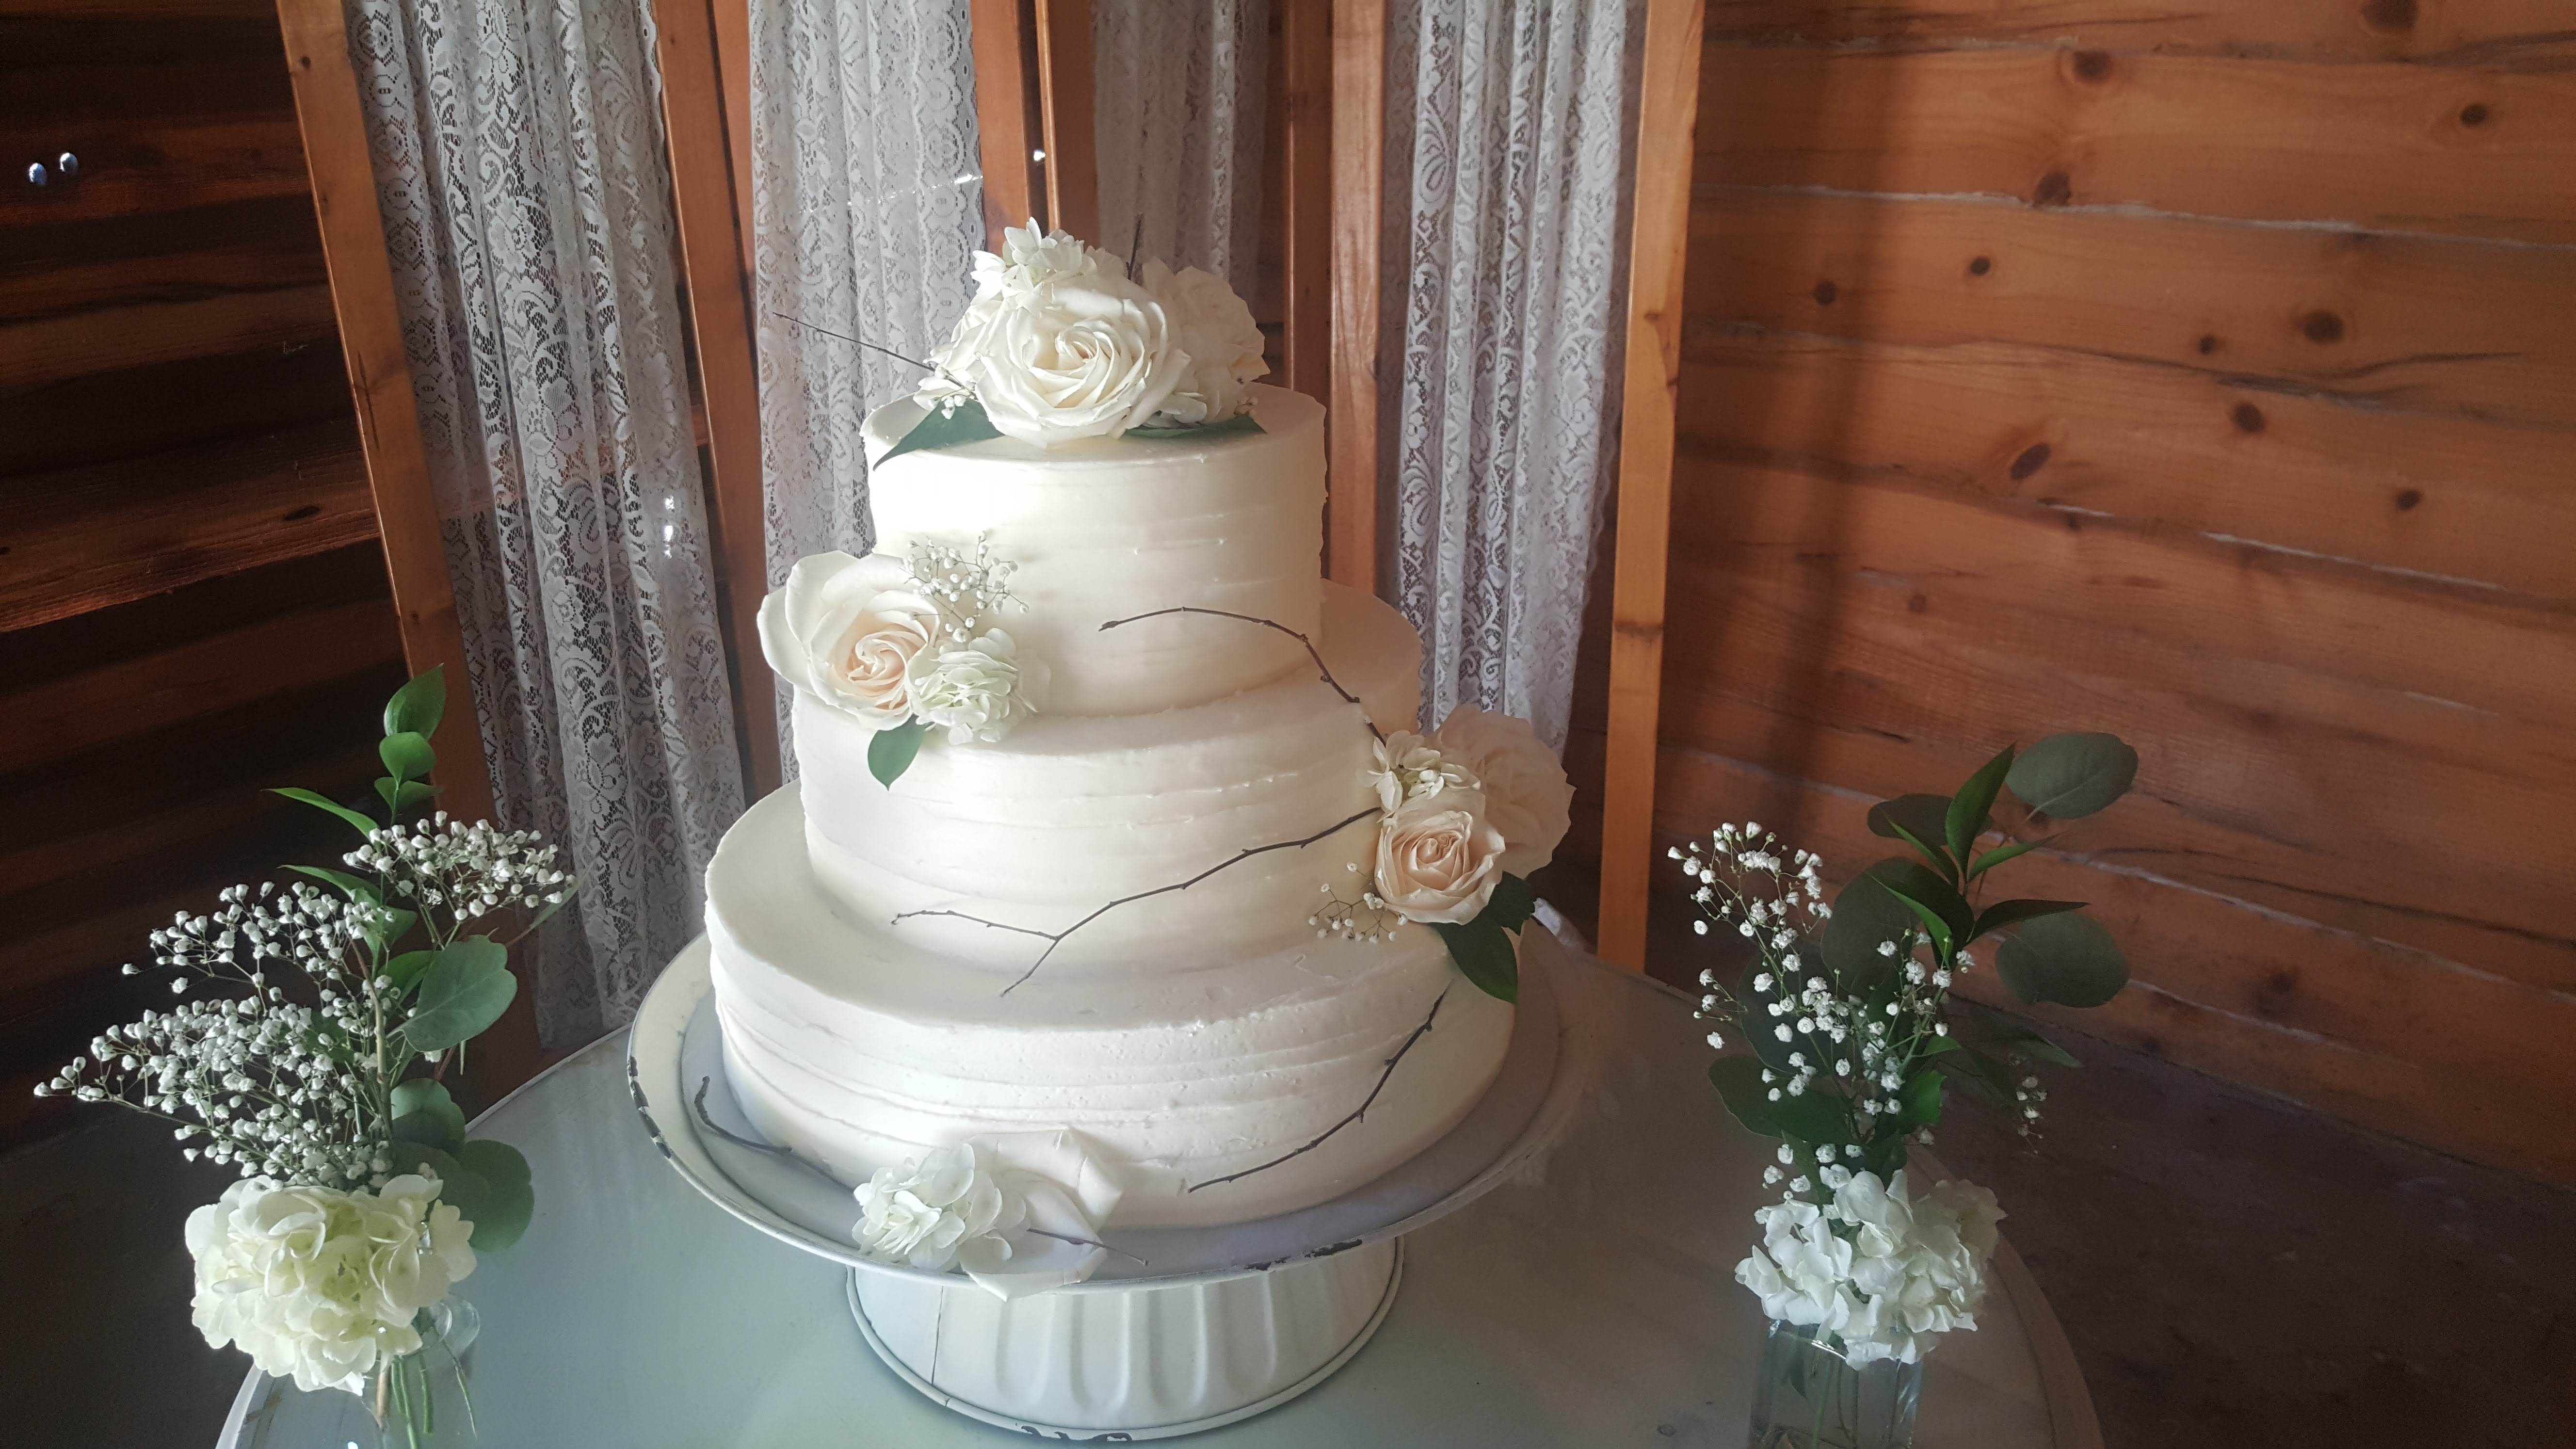 3 Tier Buttercream Ruffles